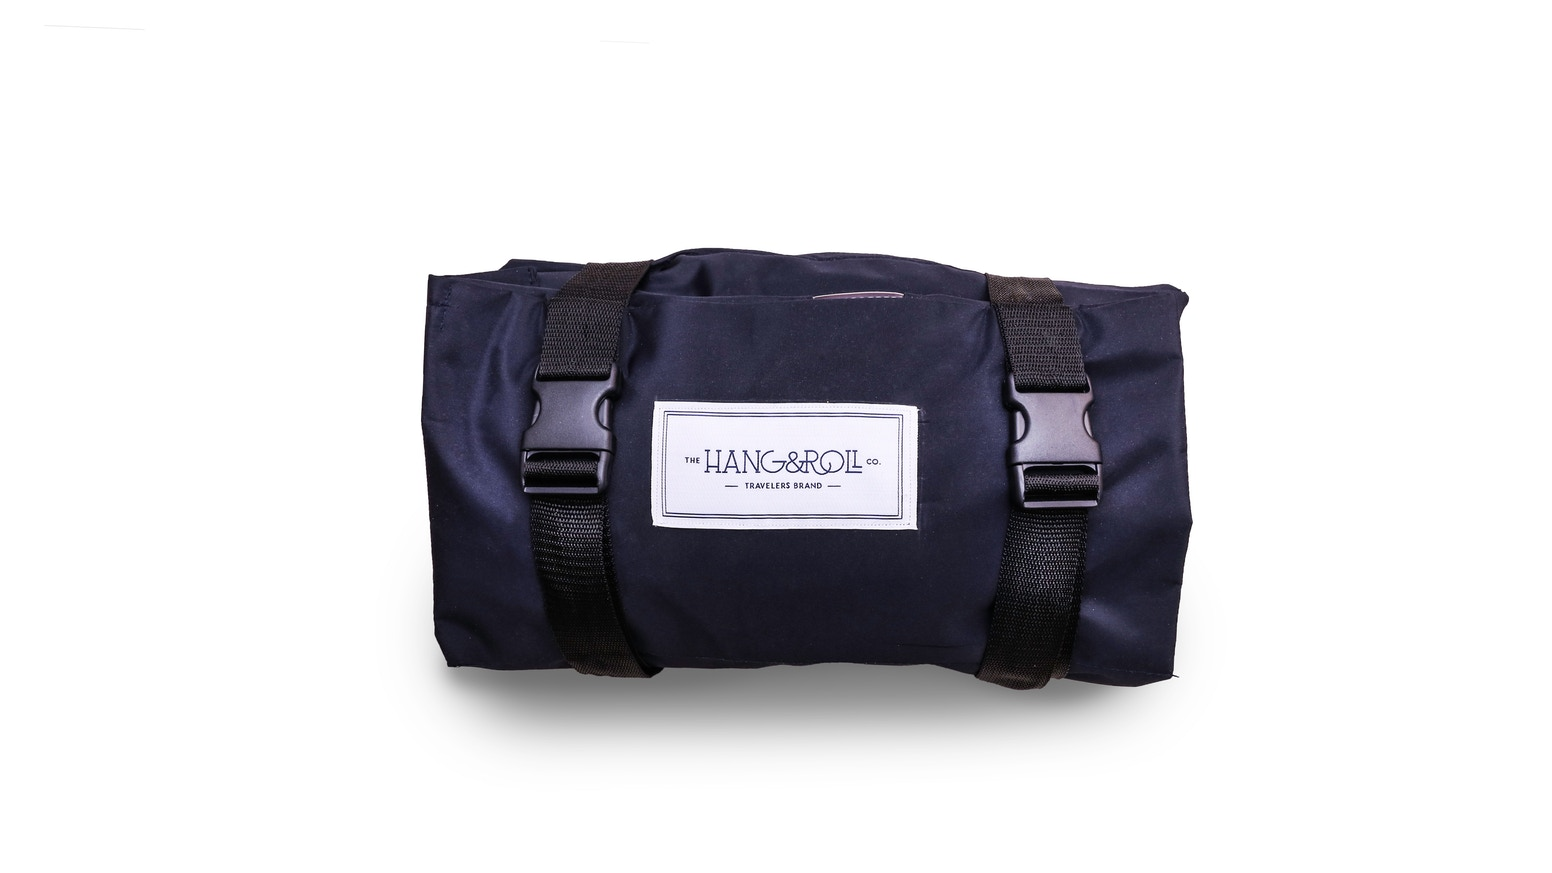 Come and check out our innovative, simple and practical luggage organizer. Hasta la vista, messy clothes!